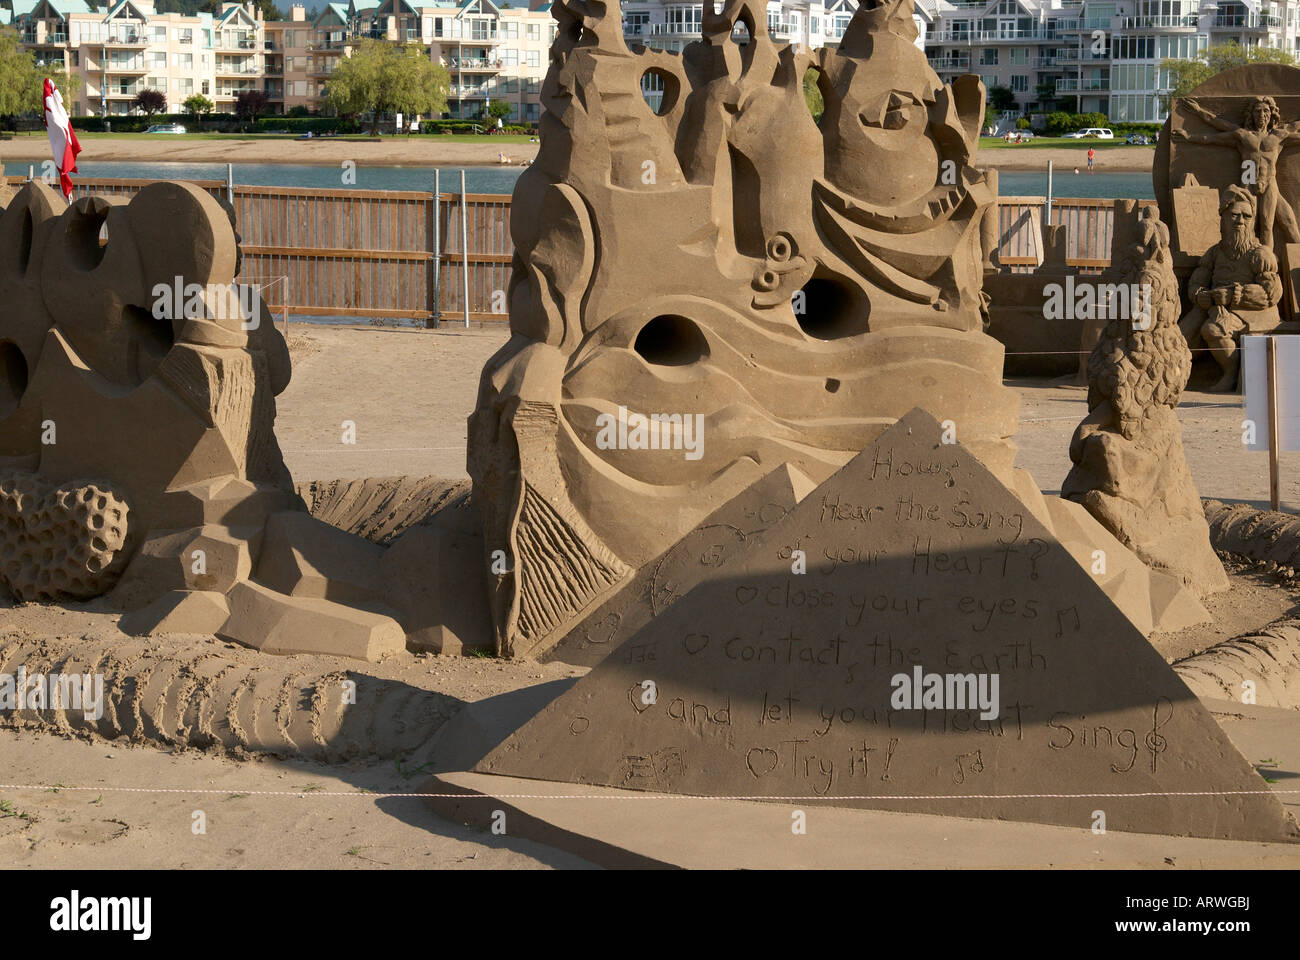 Harrison Hot Springs, near Vancouver considers itself to be the sand sculpture capital of the world. - Stock Image